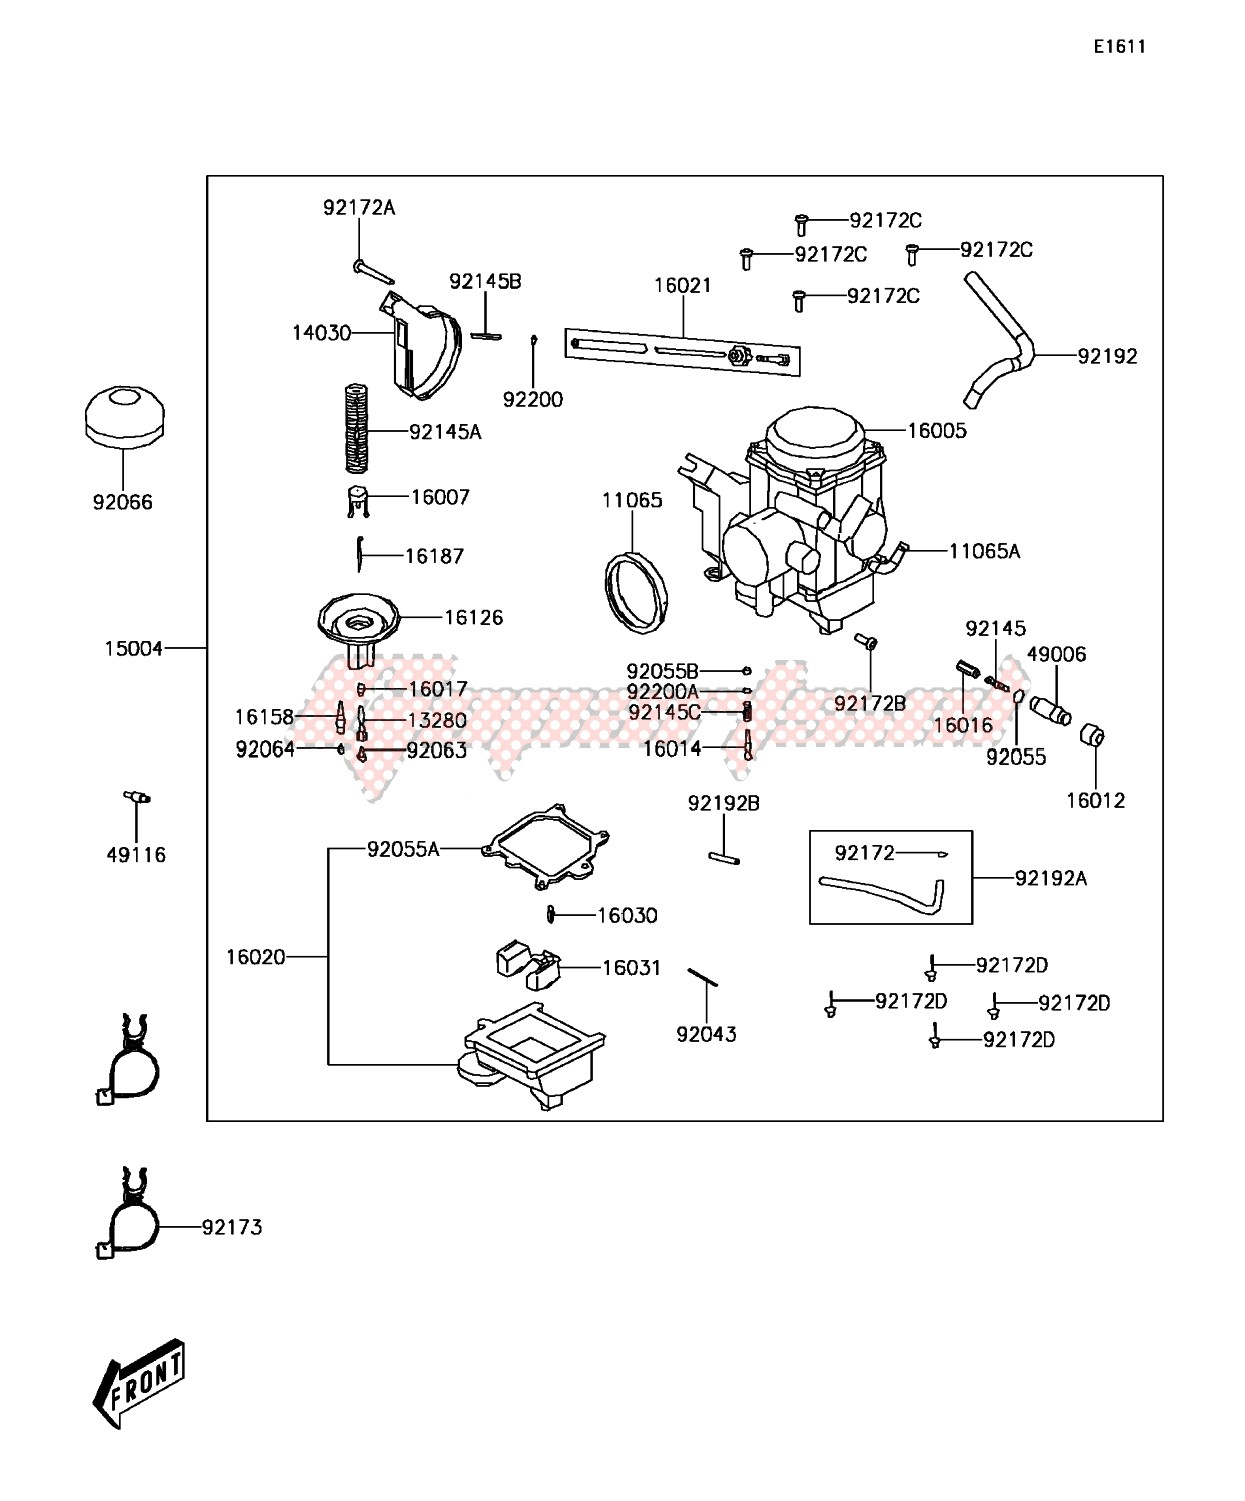 Carburetor image